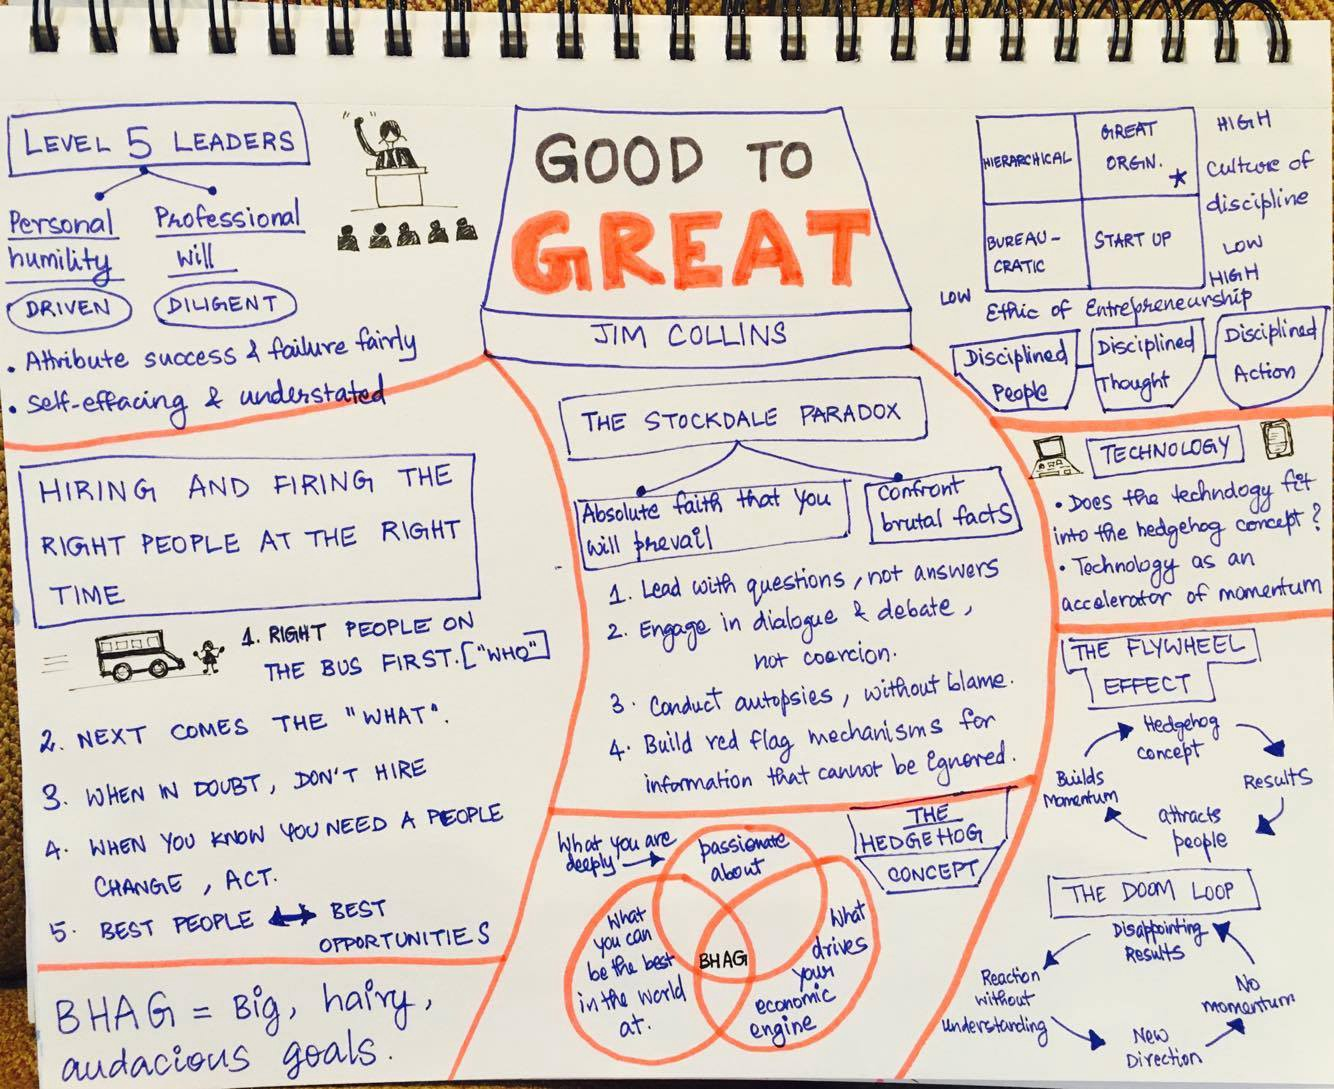 good to great by jim collins Good to great, by jim collins, is a very informative book regarding the world of business it highlights past/current companies that made a success jump from good to.